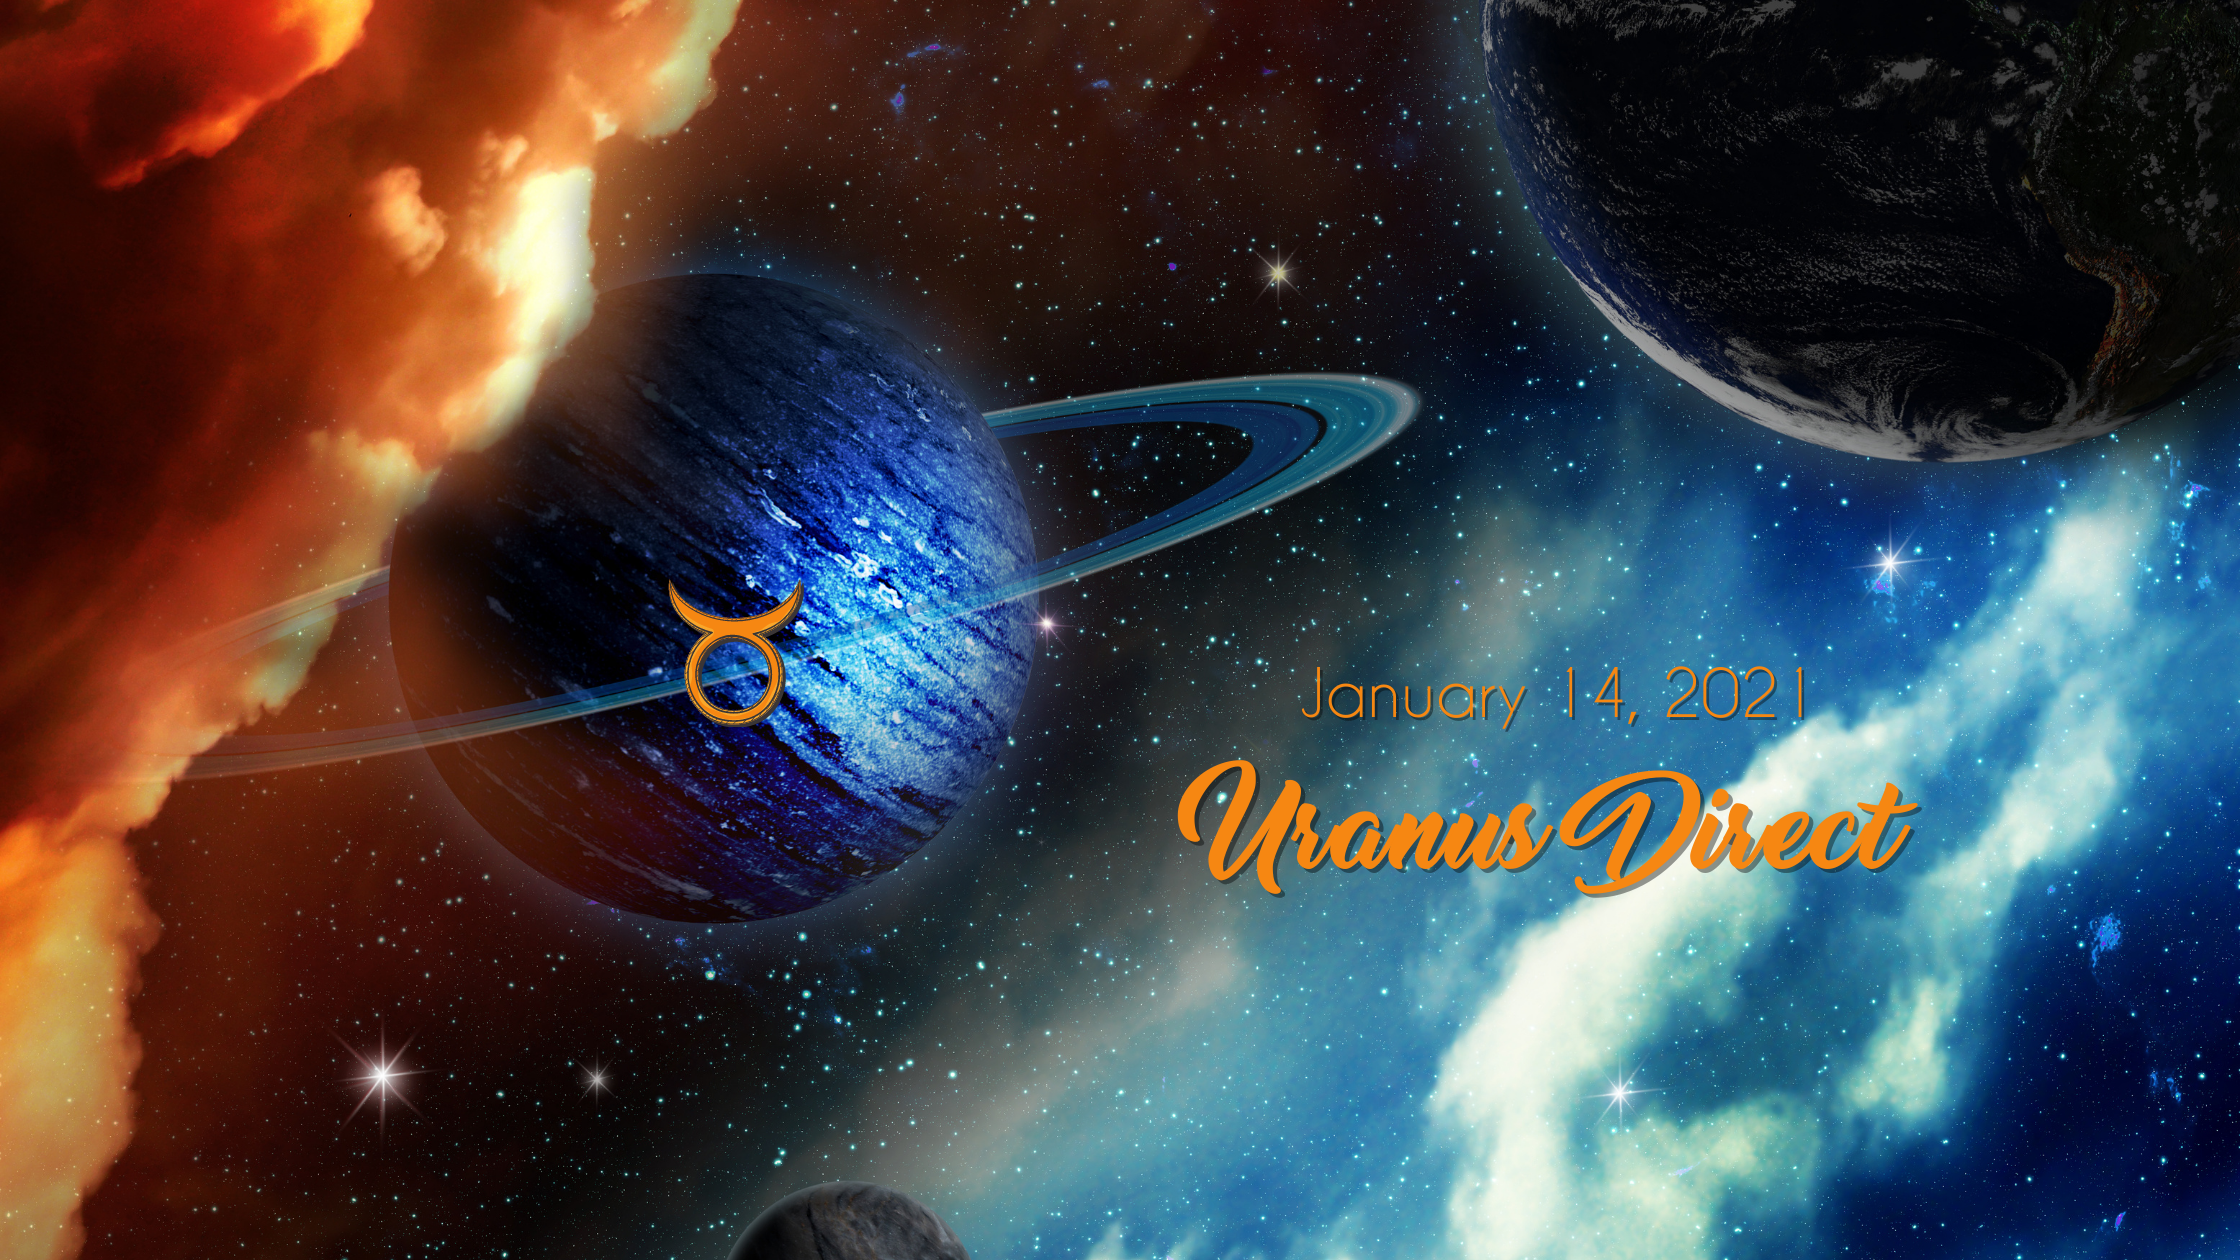 Uranus Direct – January 14, 2021